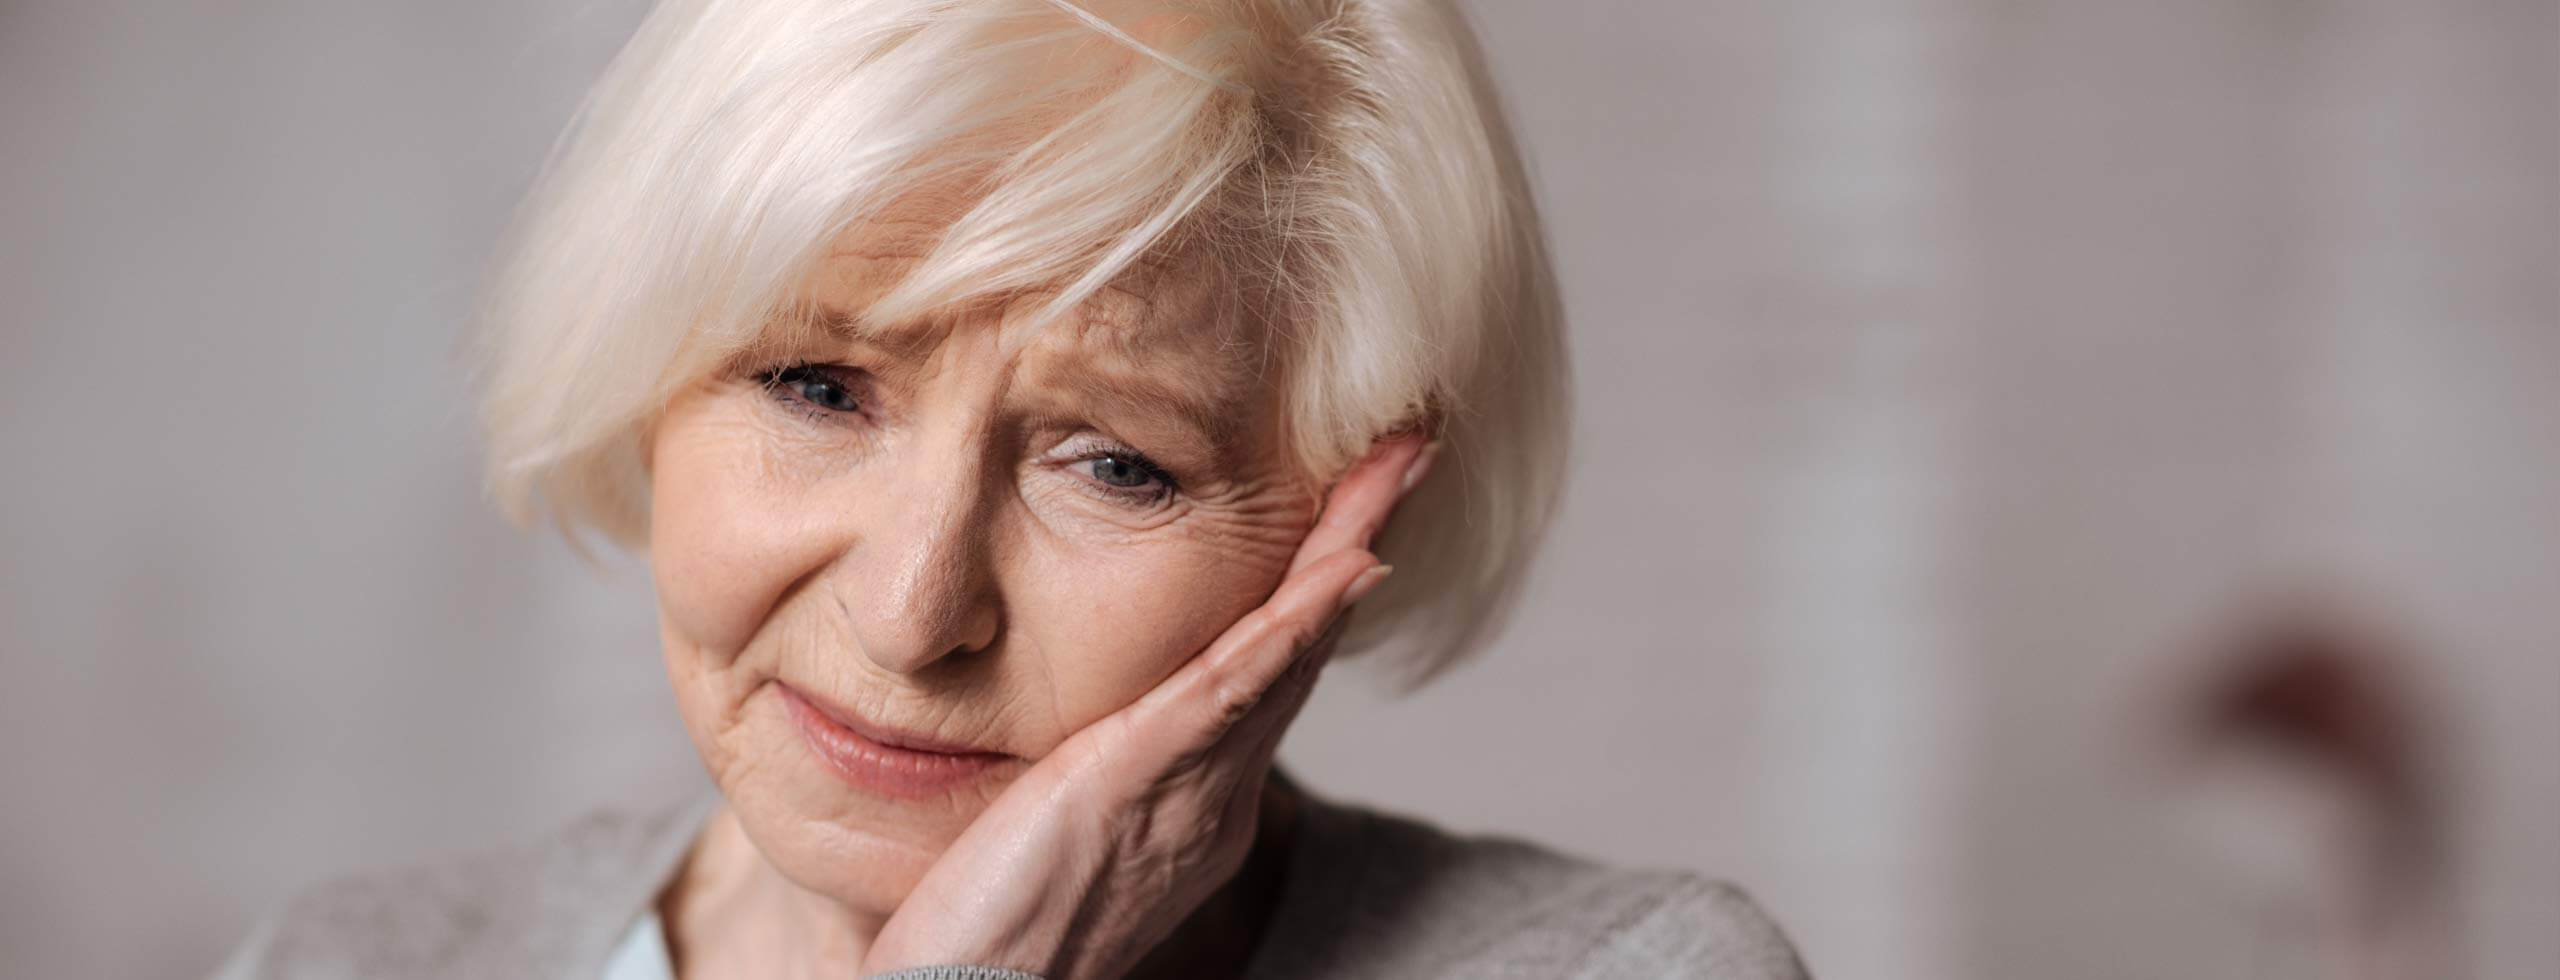 Older woman frowning and holding the side of her face because of TMJ pain.